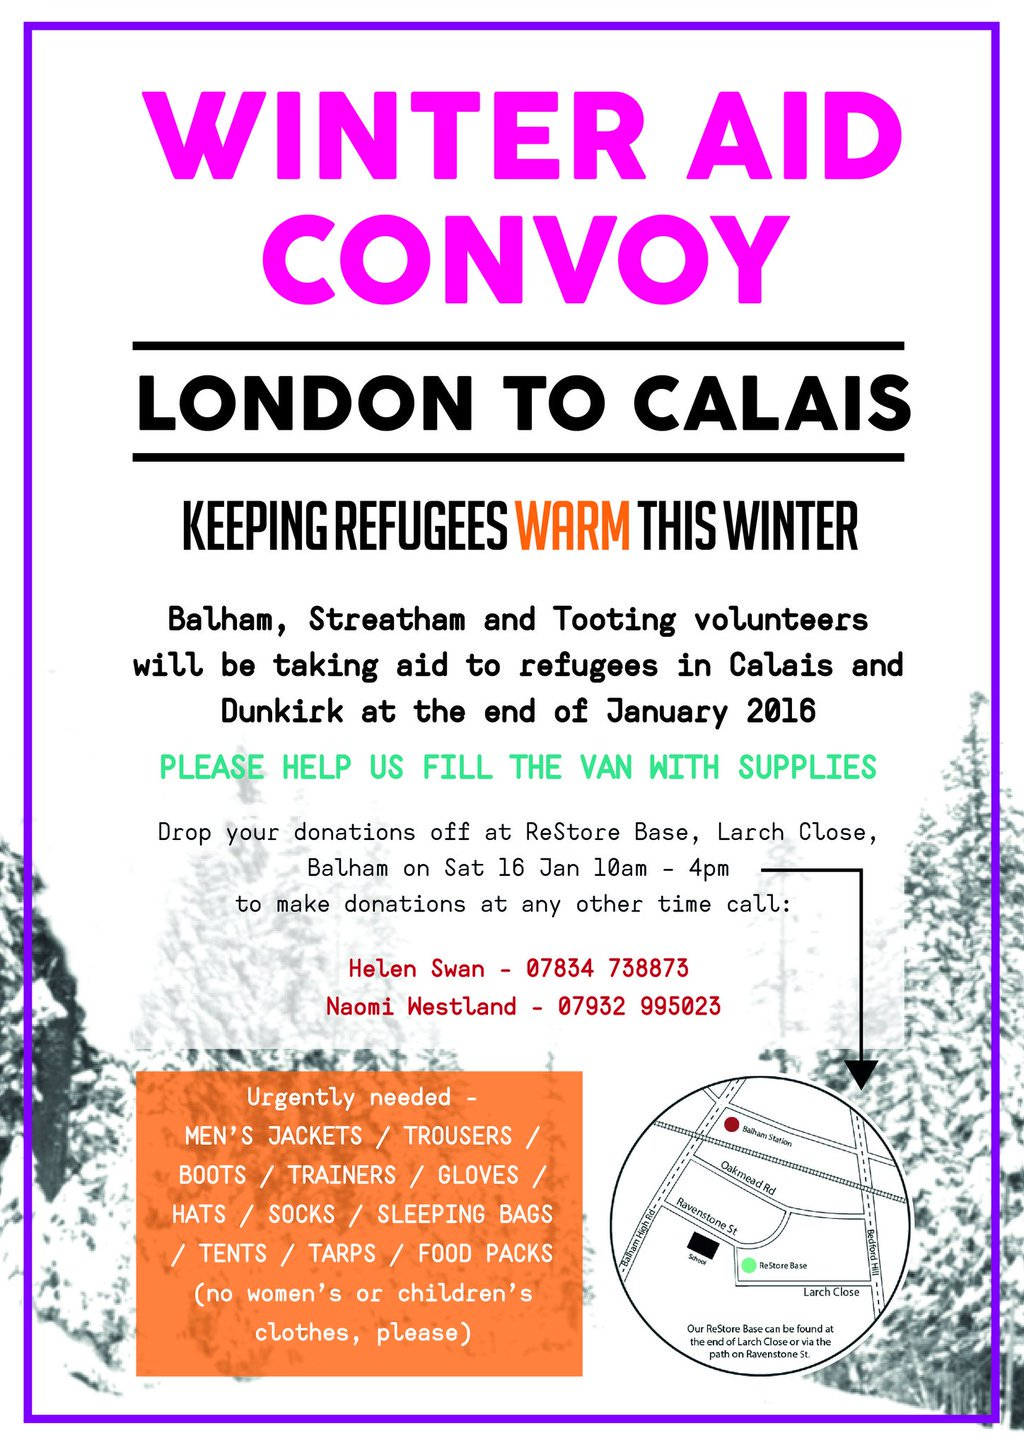 Can any #Tooting, #Balham & #Streatham residents help keep refugees warm by donating this #weekend? https://t.co/tqemW6pM5Y